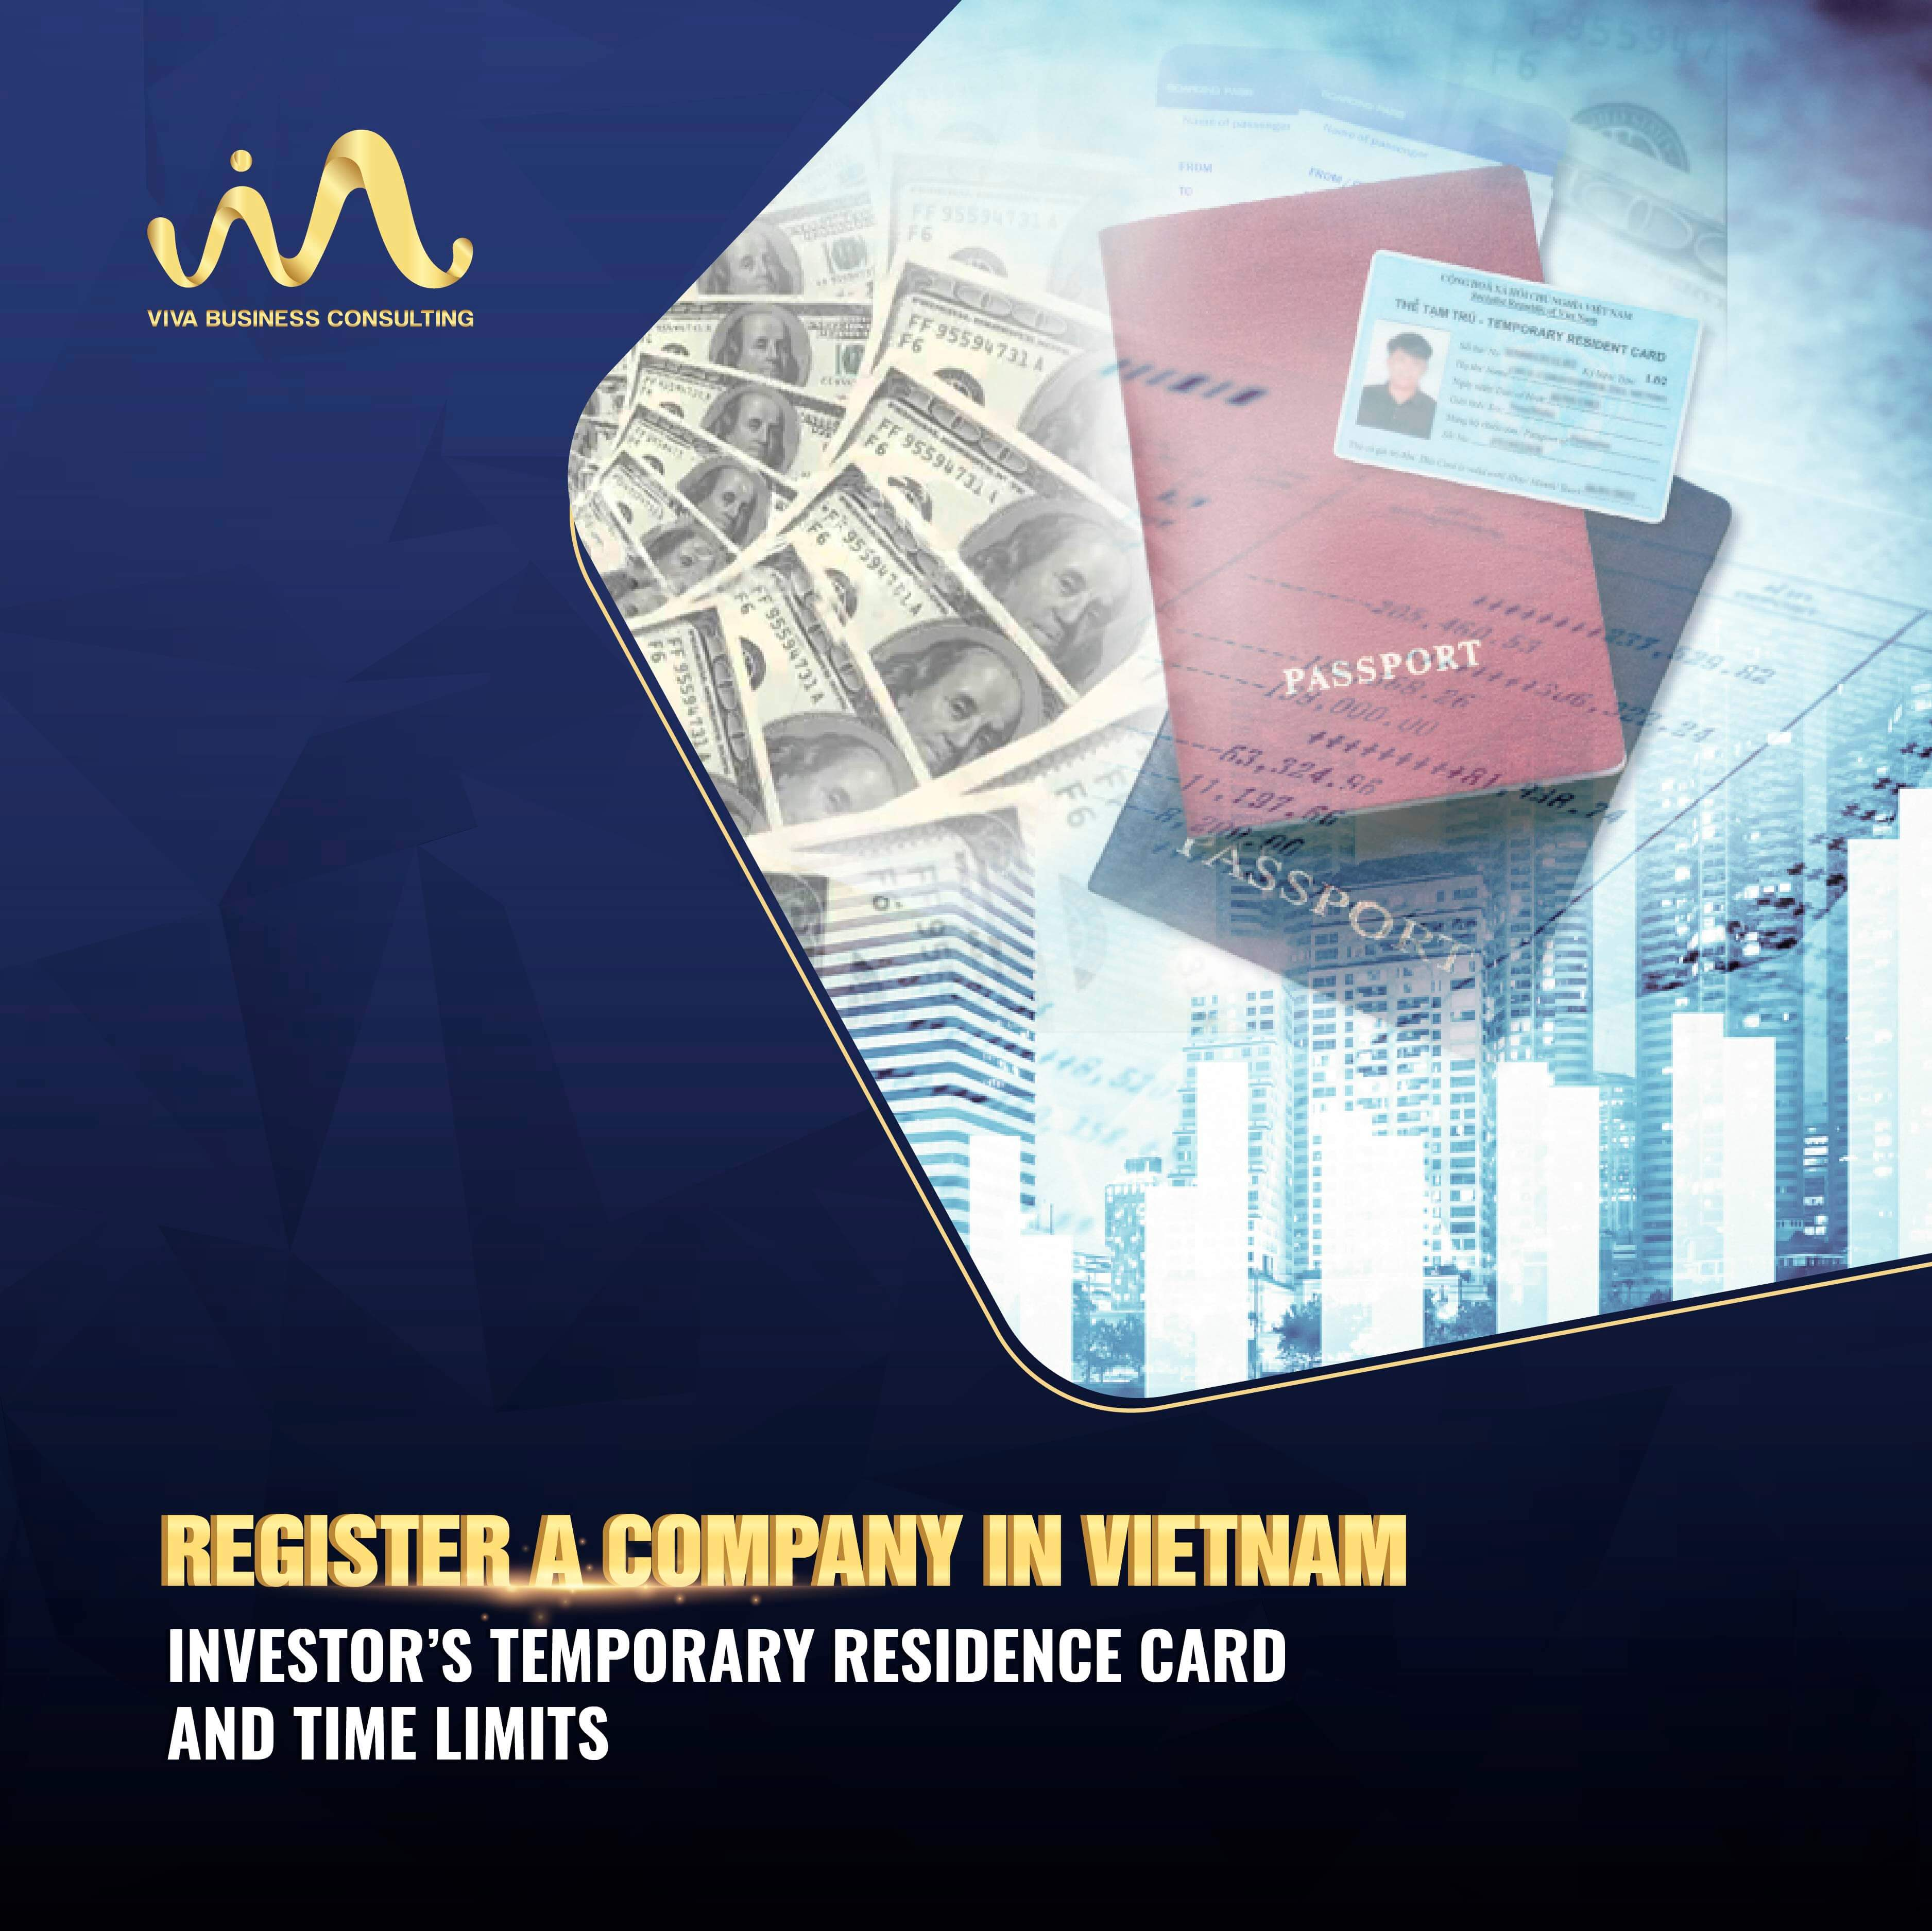 Foreign investors in Vietnam | Temporary Residence Card | Time & Limits